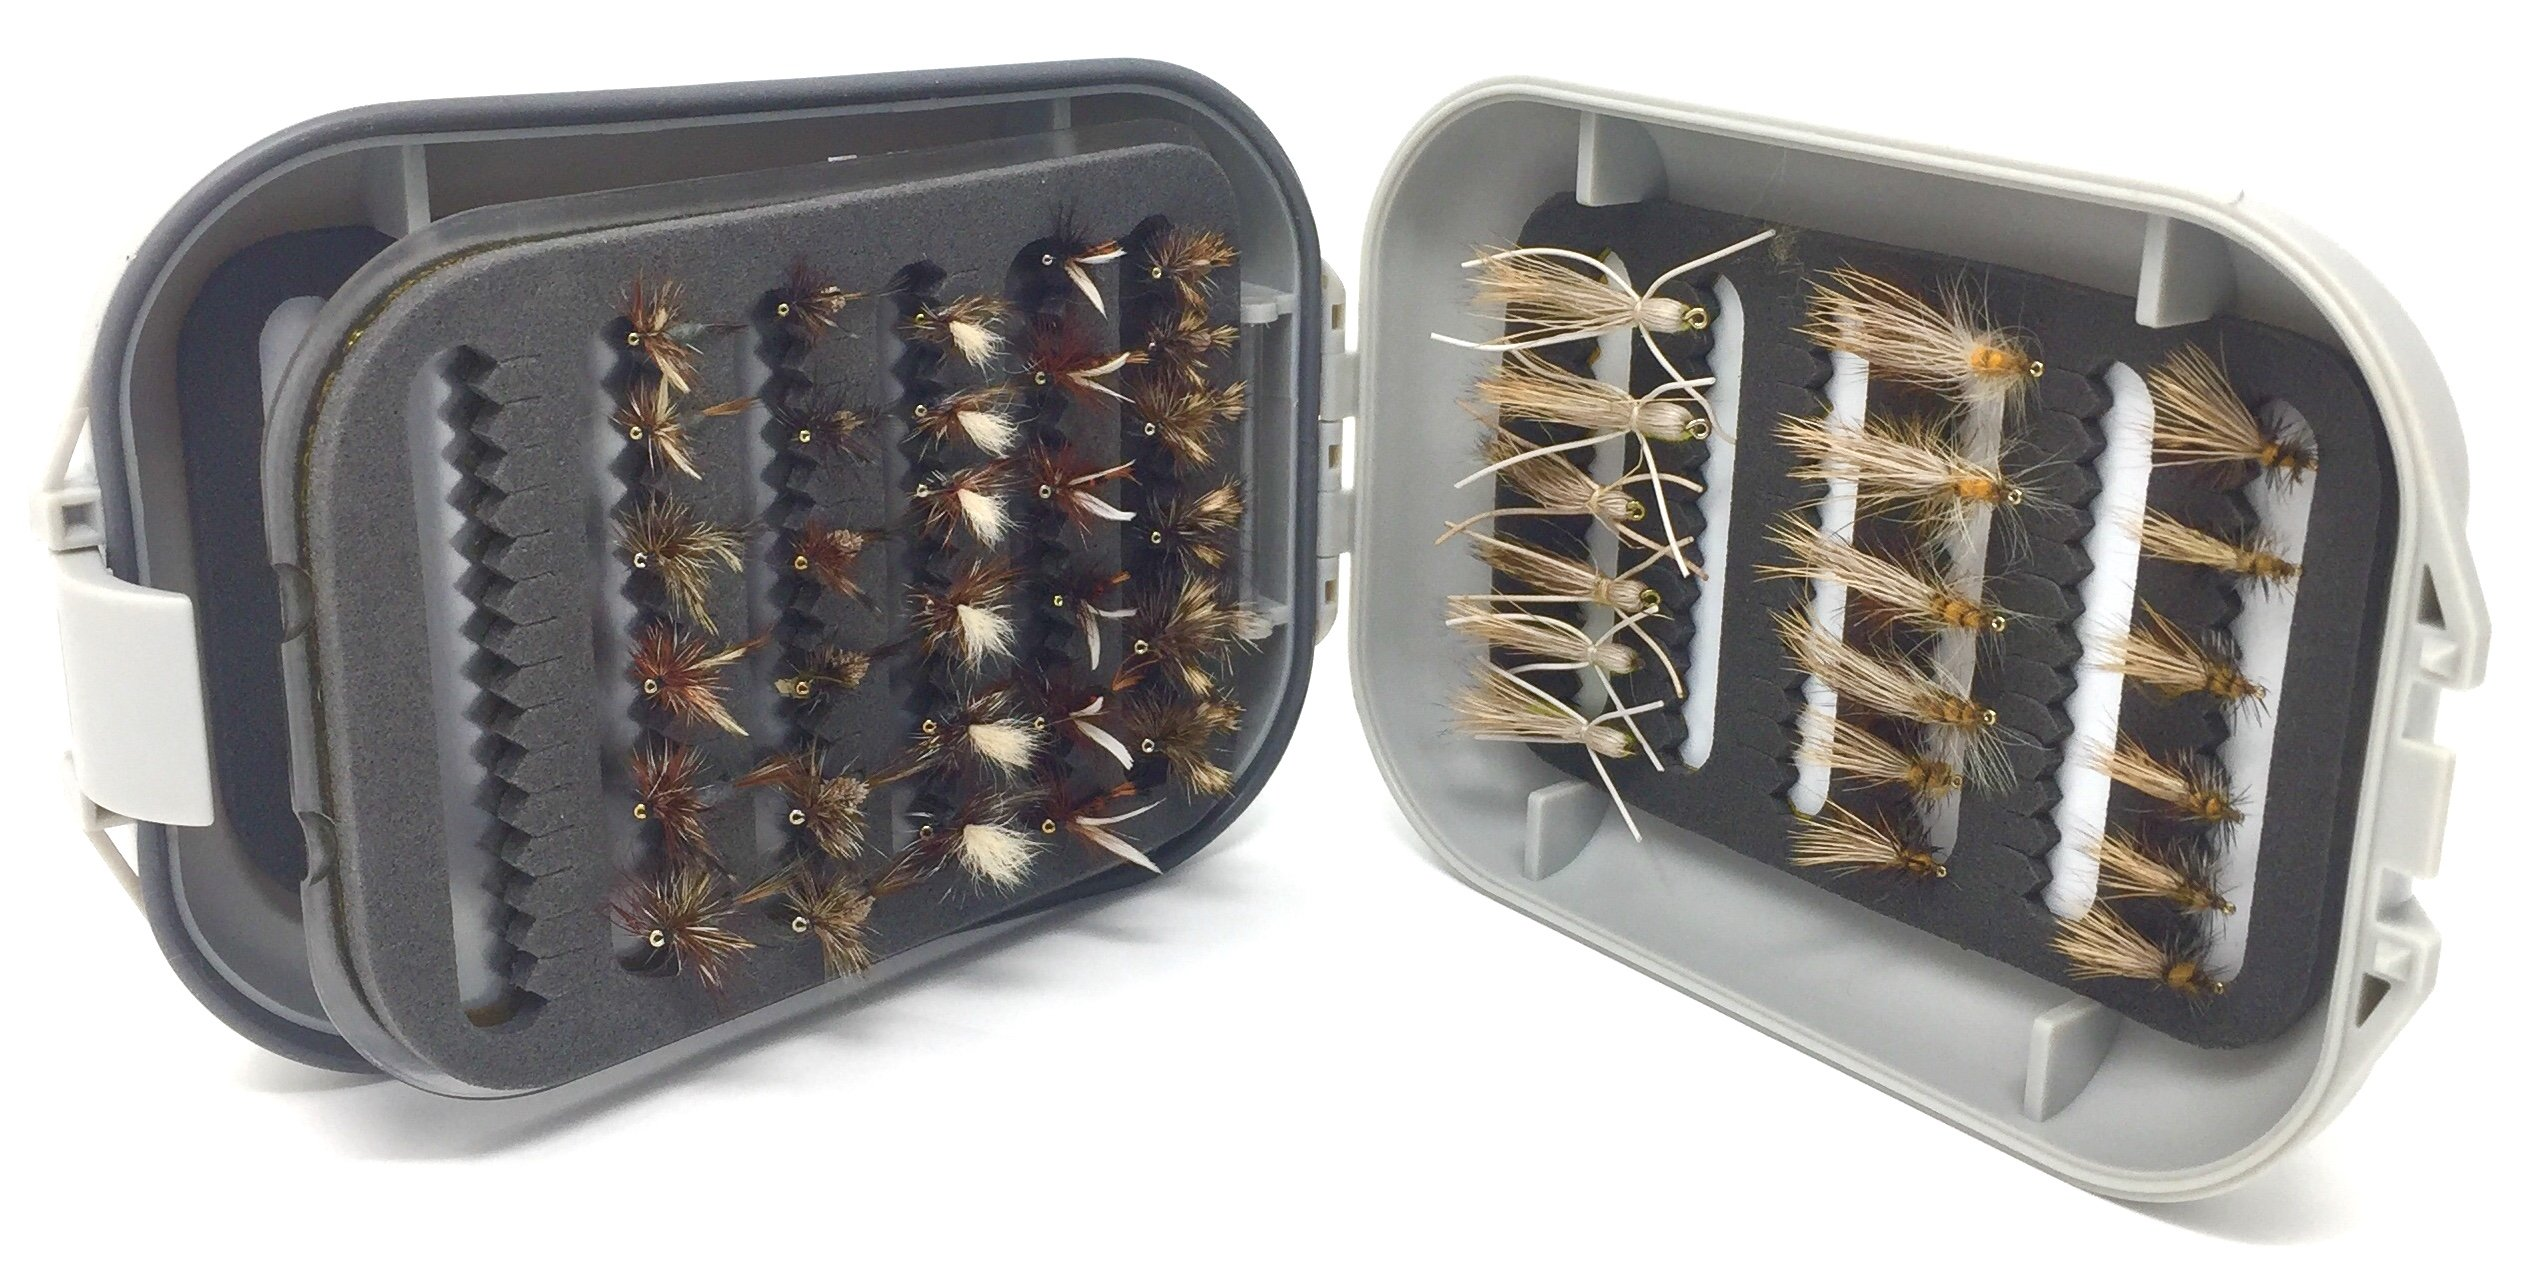 Fly Fishing Flies for Trout and Other Freshwater Fish - 48 Dry Flies and Waterproof Fly Box - 8 Patterns in 3 Sizes (2 of Each Size) Adams, Royal Coachman, Stimulator Yellow and Olive, Madam X, Humpy by Feeder Creek